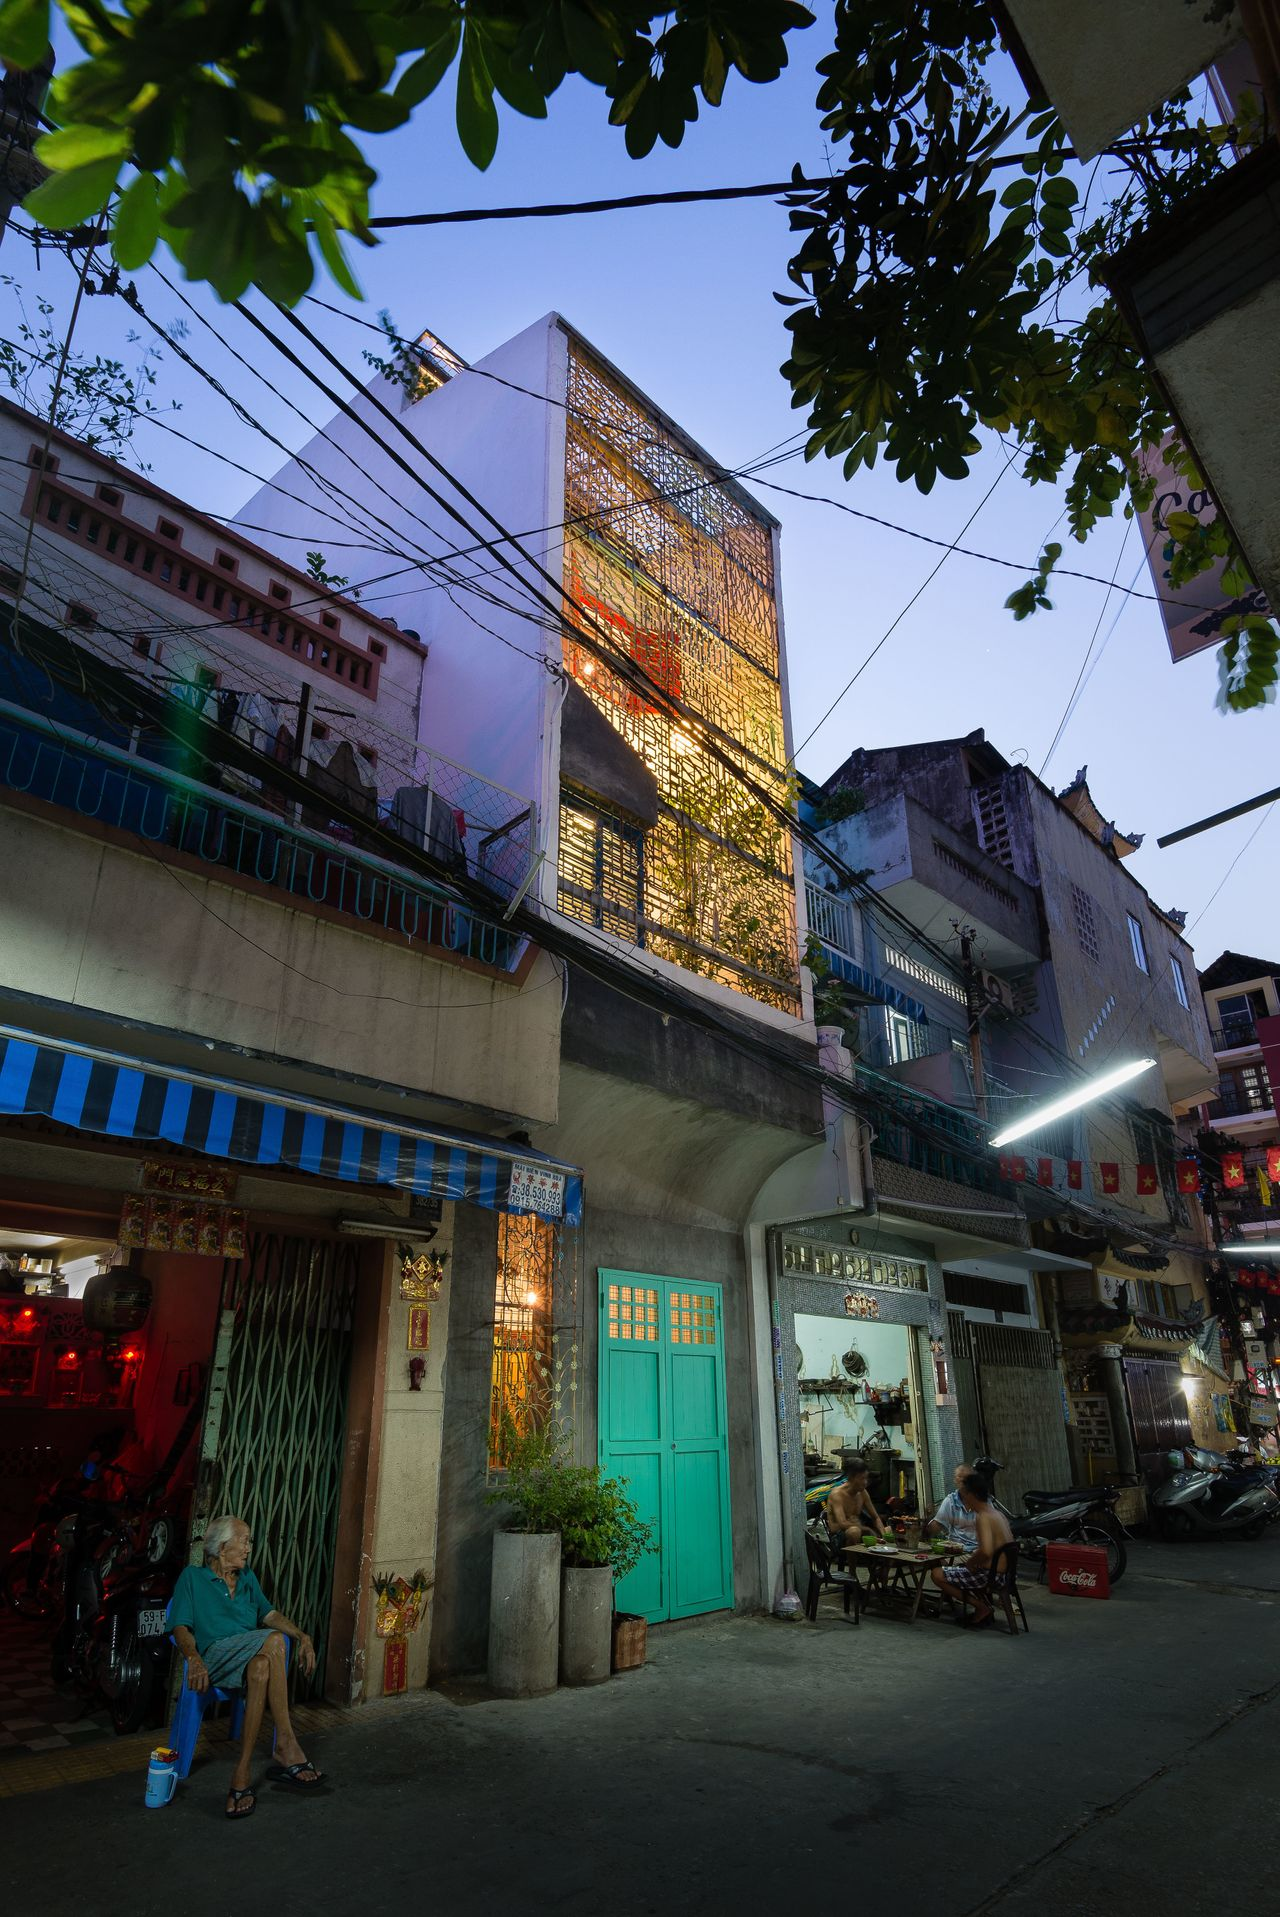 In Ho Chi Minh City, a tribute to Saigon, which includes stacked compartments with varying degrees of exposure to the outdoors.